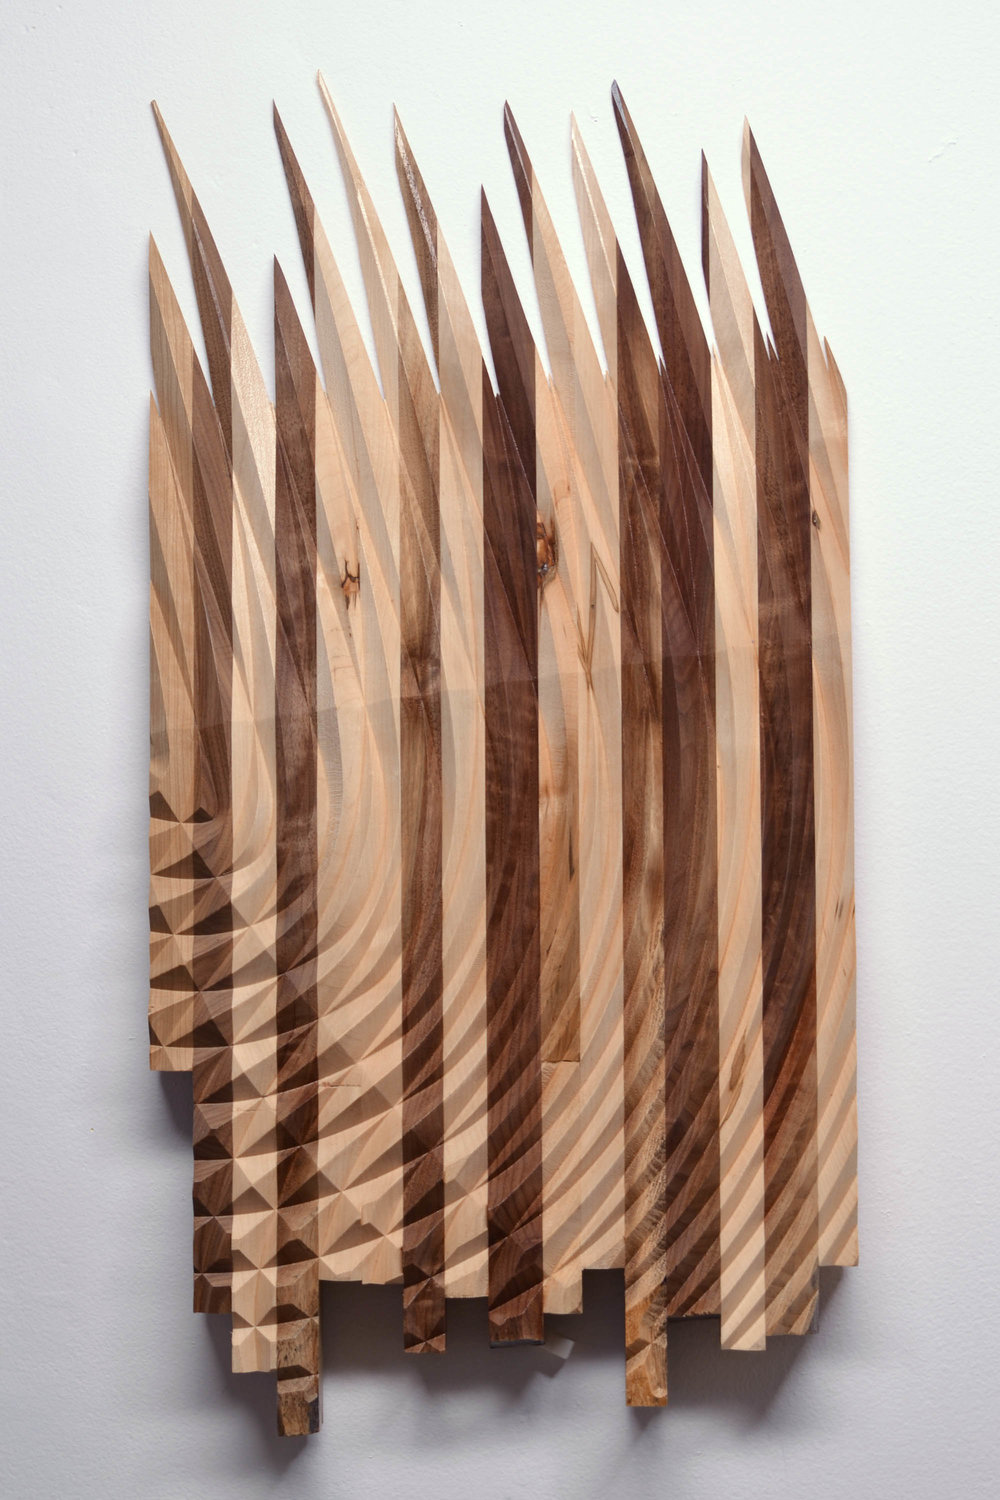 Working in Wood  - Works by Michael Mittelman